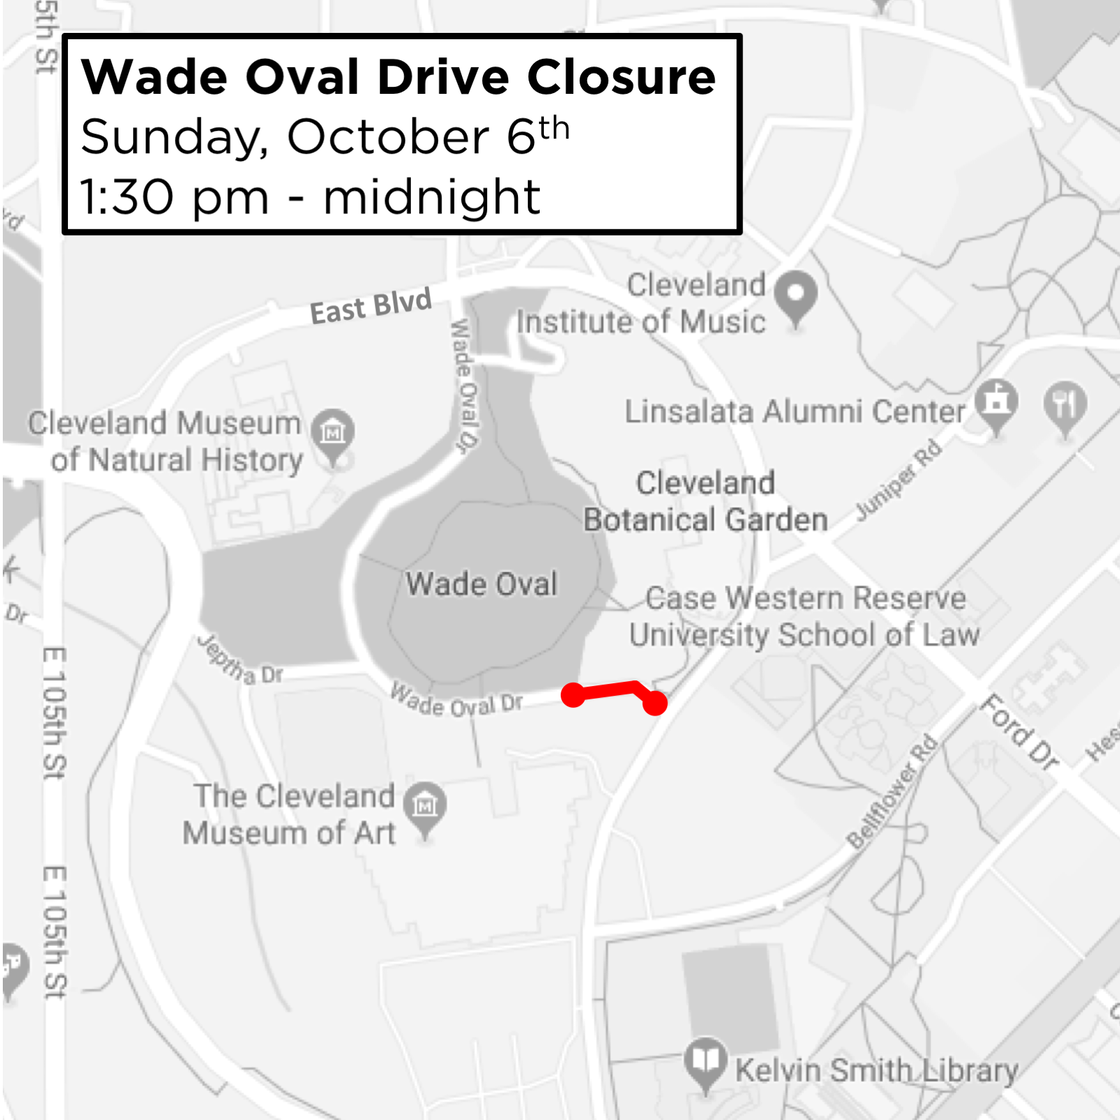 Wade Oval Drive Closure this Sunday